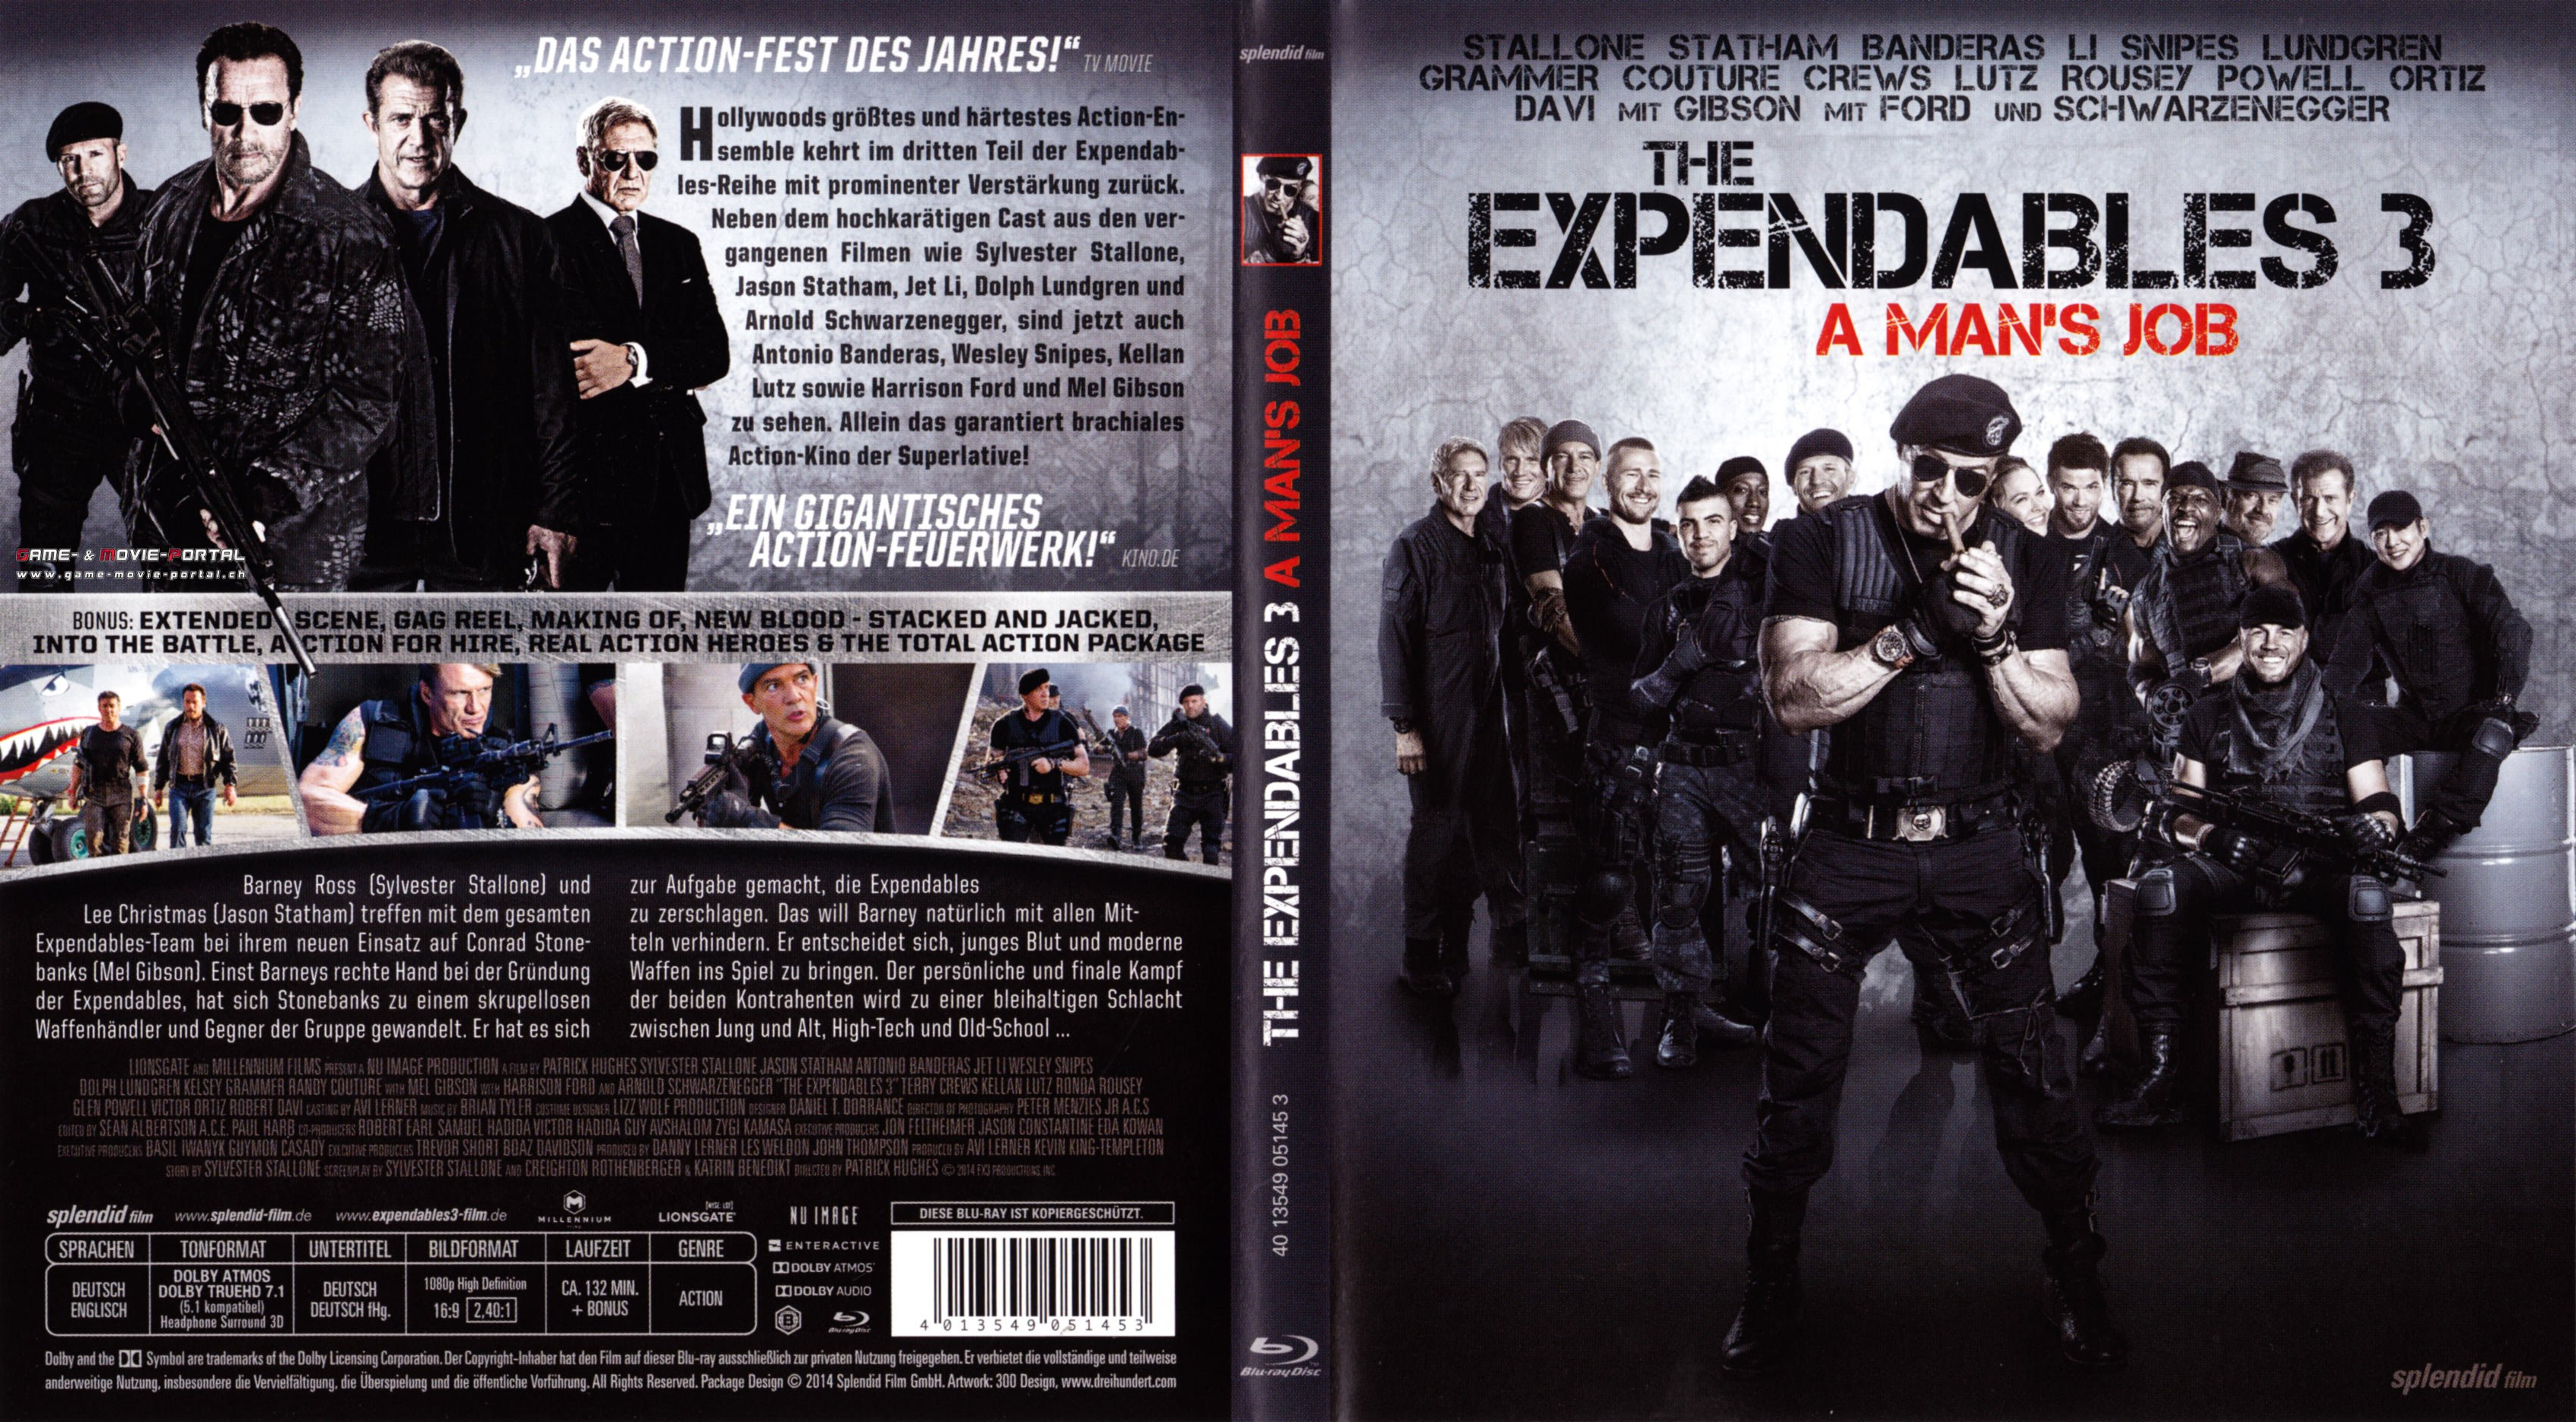 The Expendables 3 A Mans Job blu ray cover german | German ...